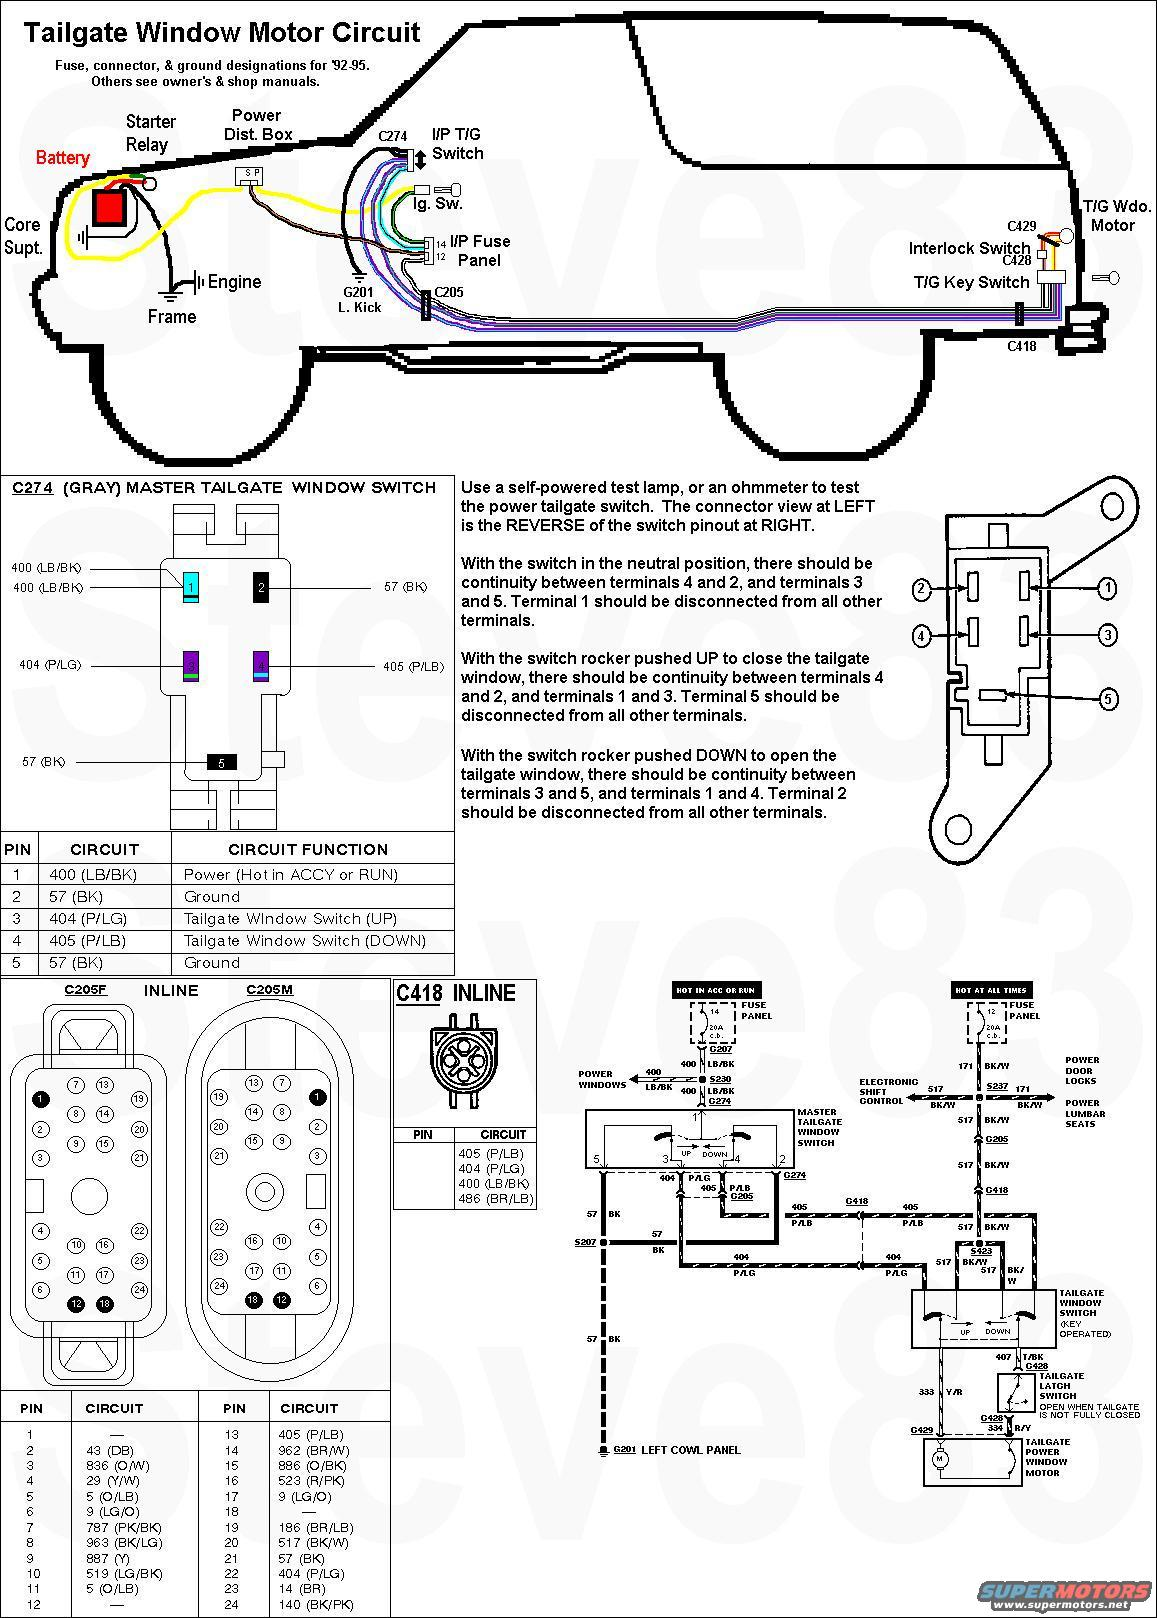 tgmotorwiring tailgate window lift key switch bypass? ford truck enthusiasts 1979 ford bronco wiring diagram at n-0.co